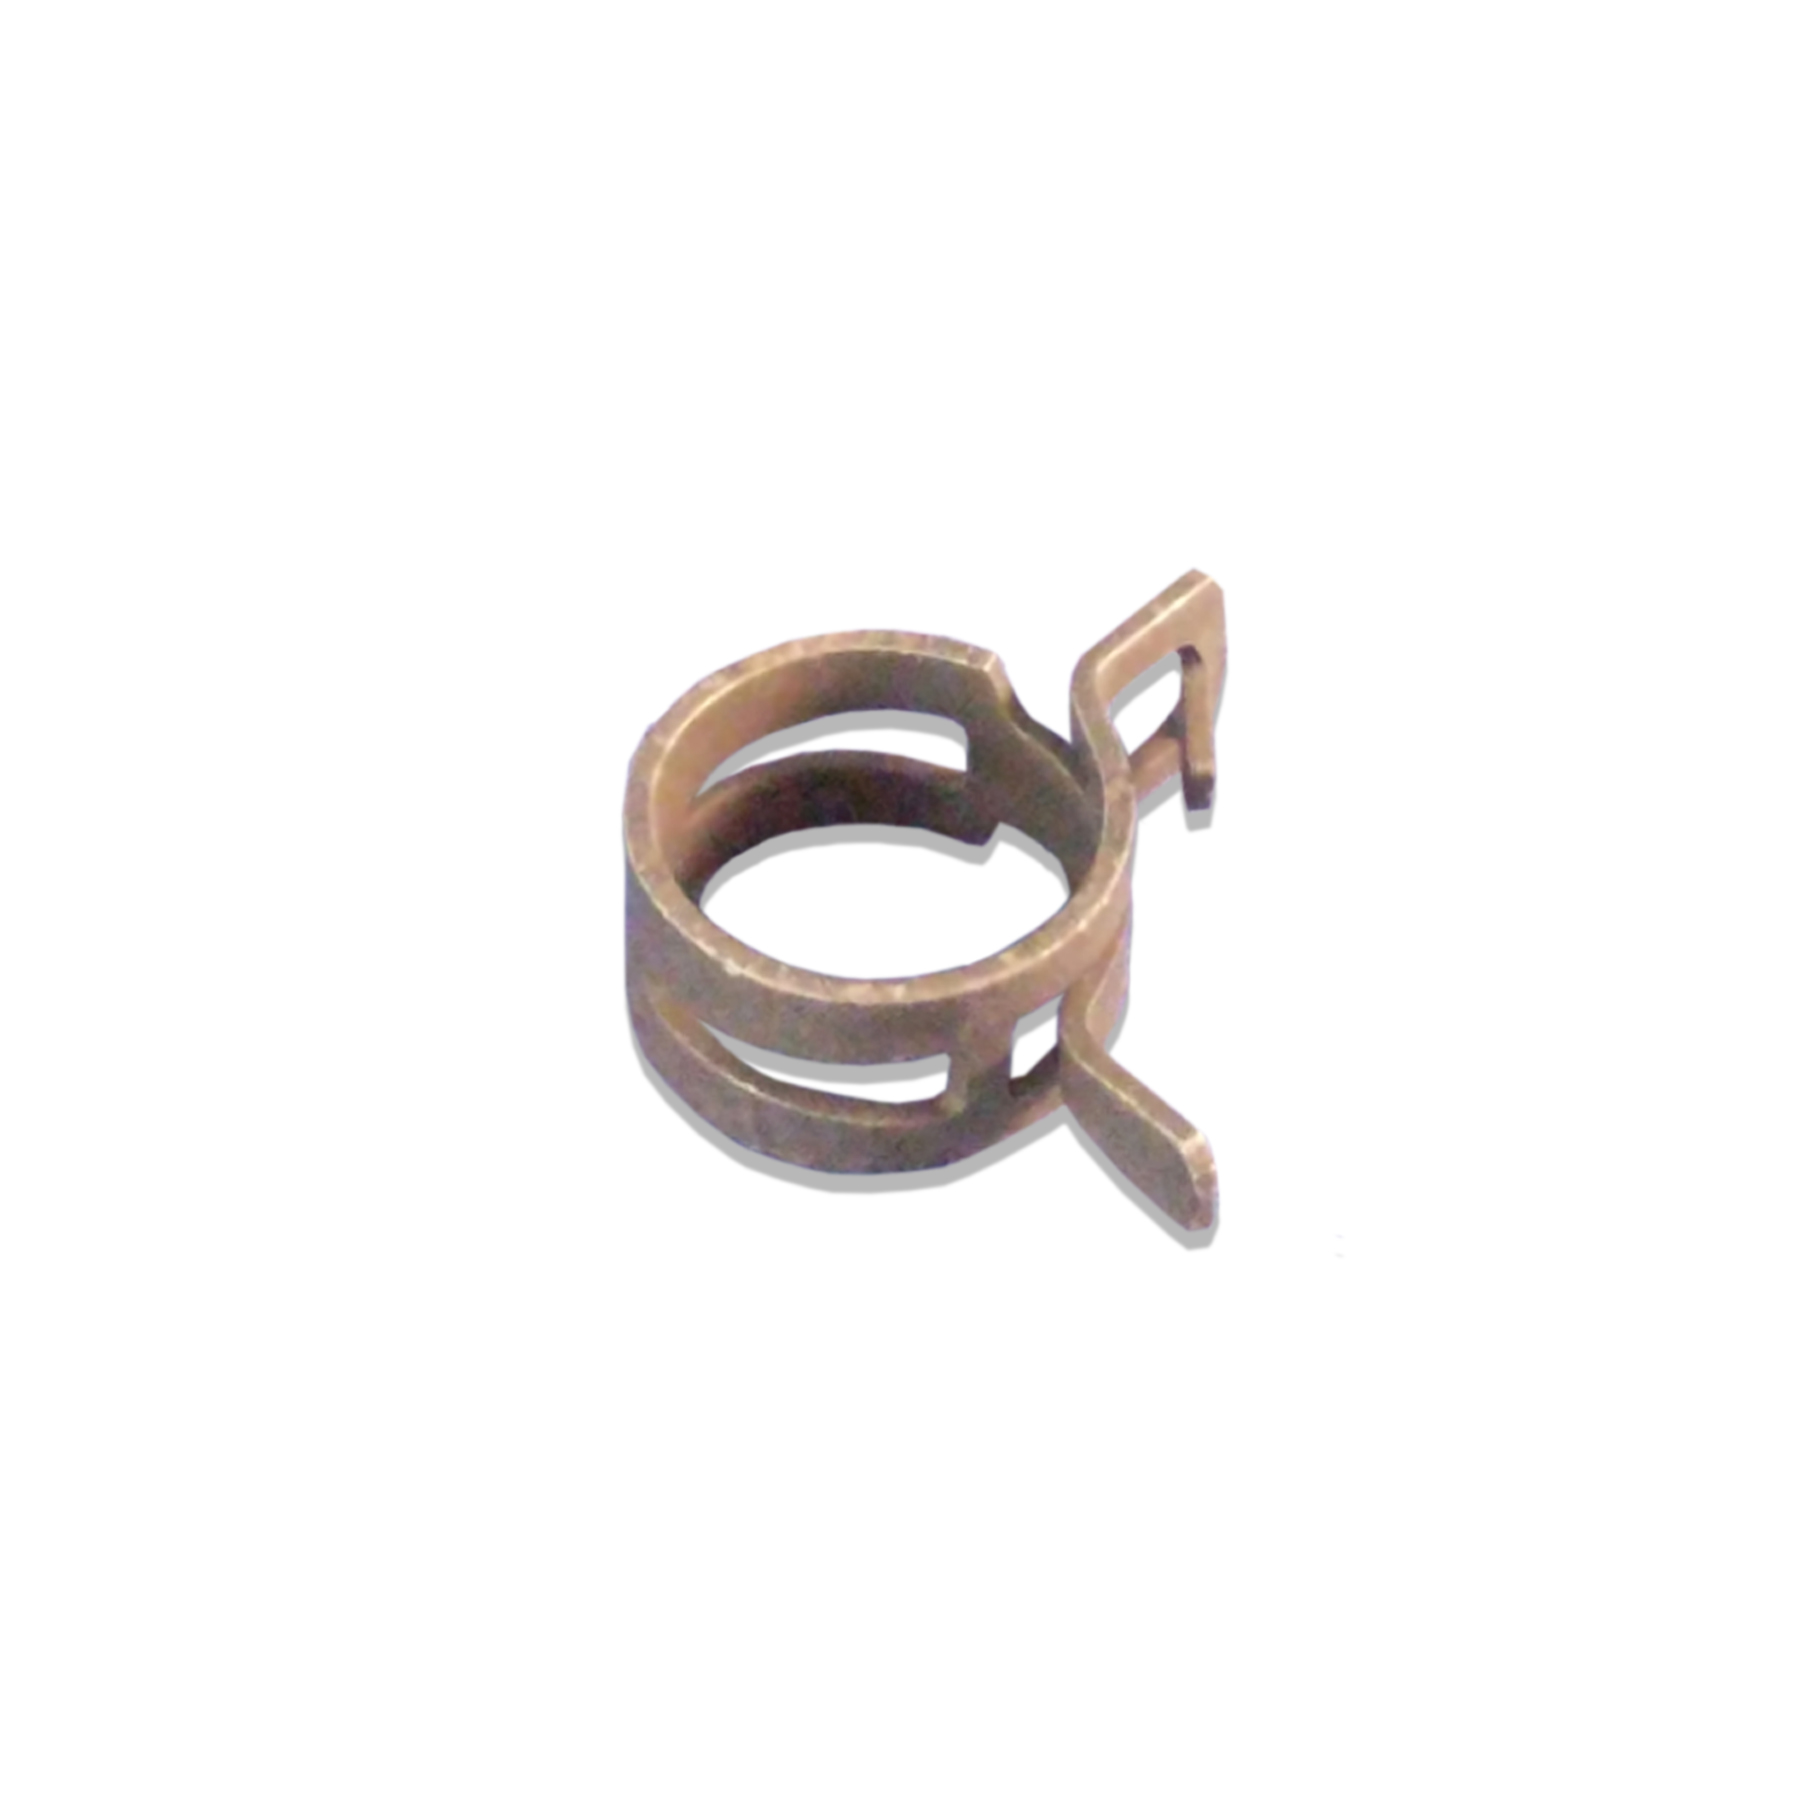 3/4 in. Constant Tension Hose Clamp